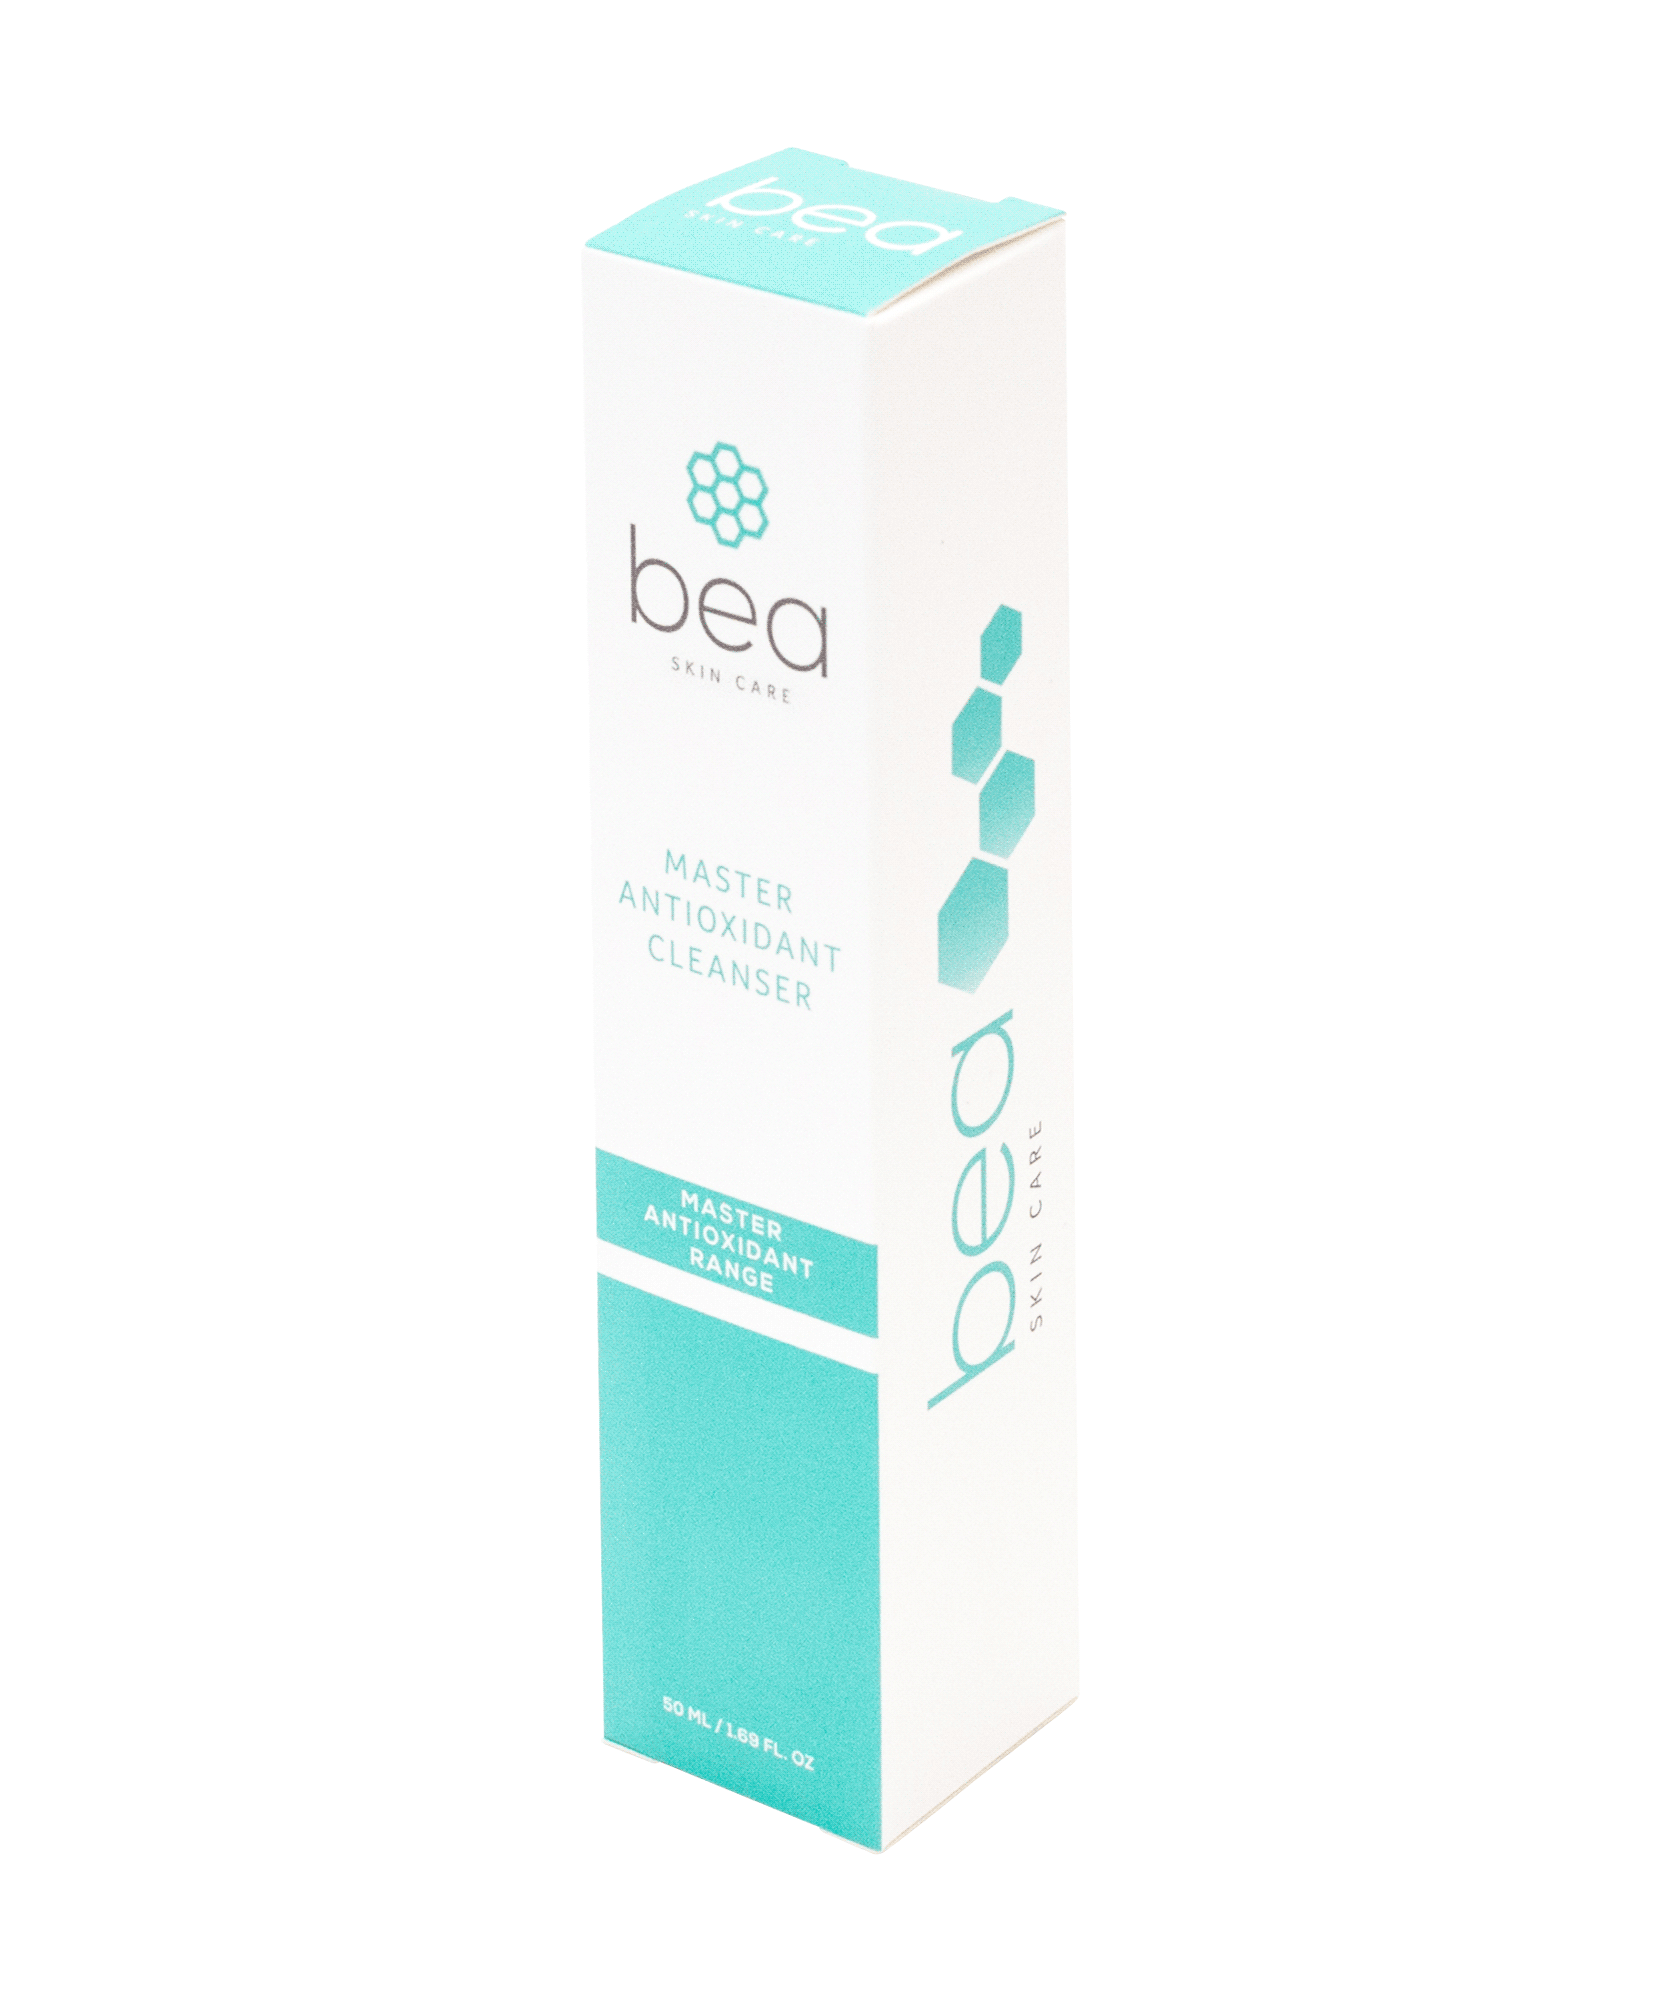 Master Antioxidant Cleanser - 50 ml Cleanser bea Skin Care